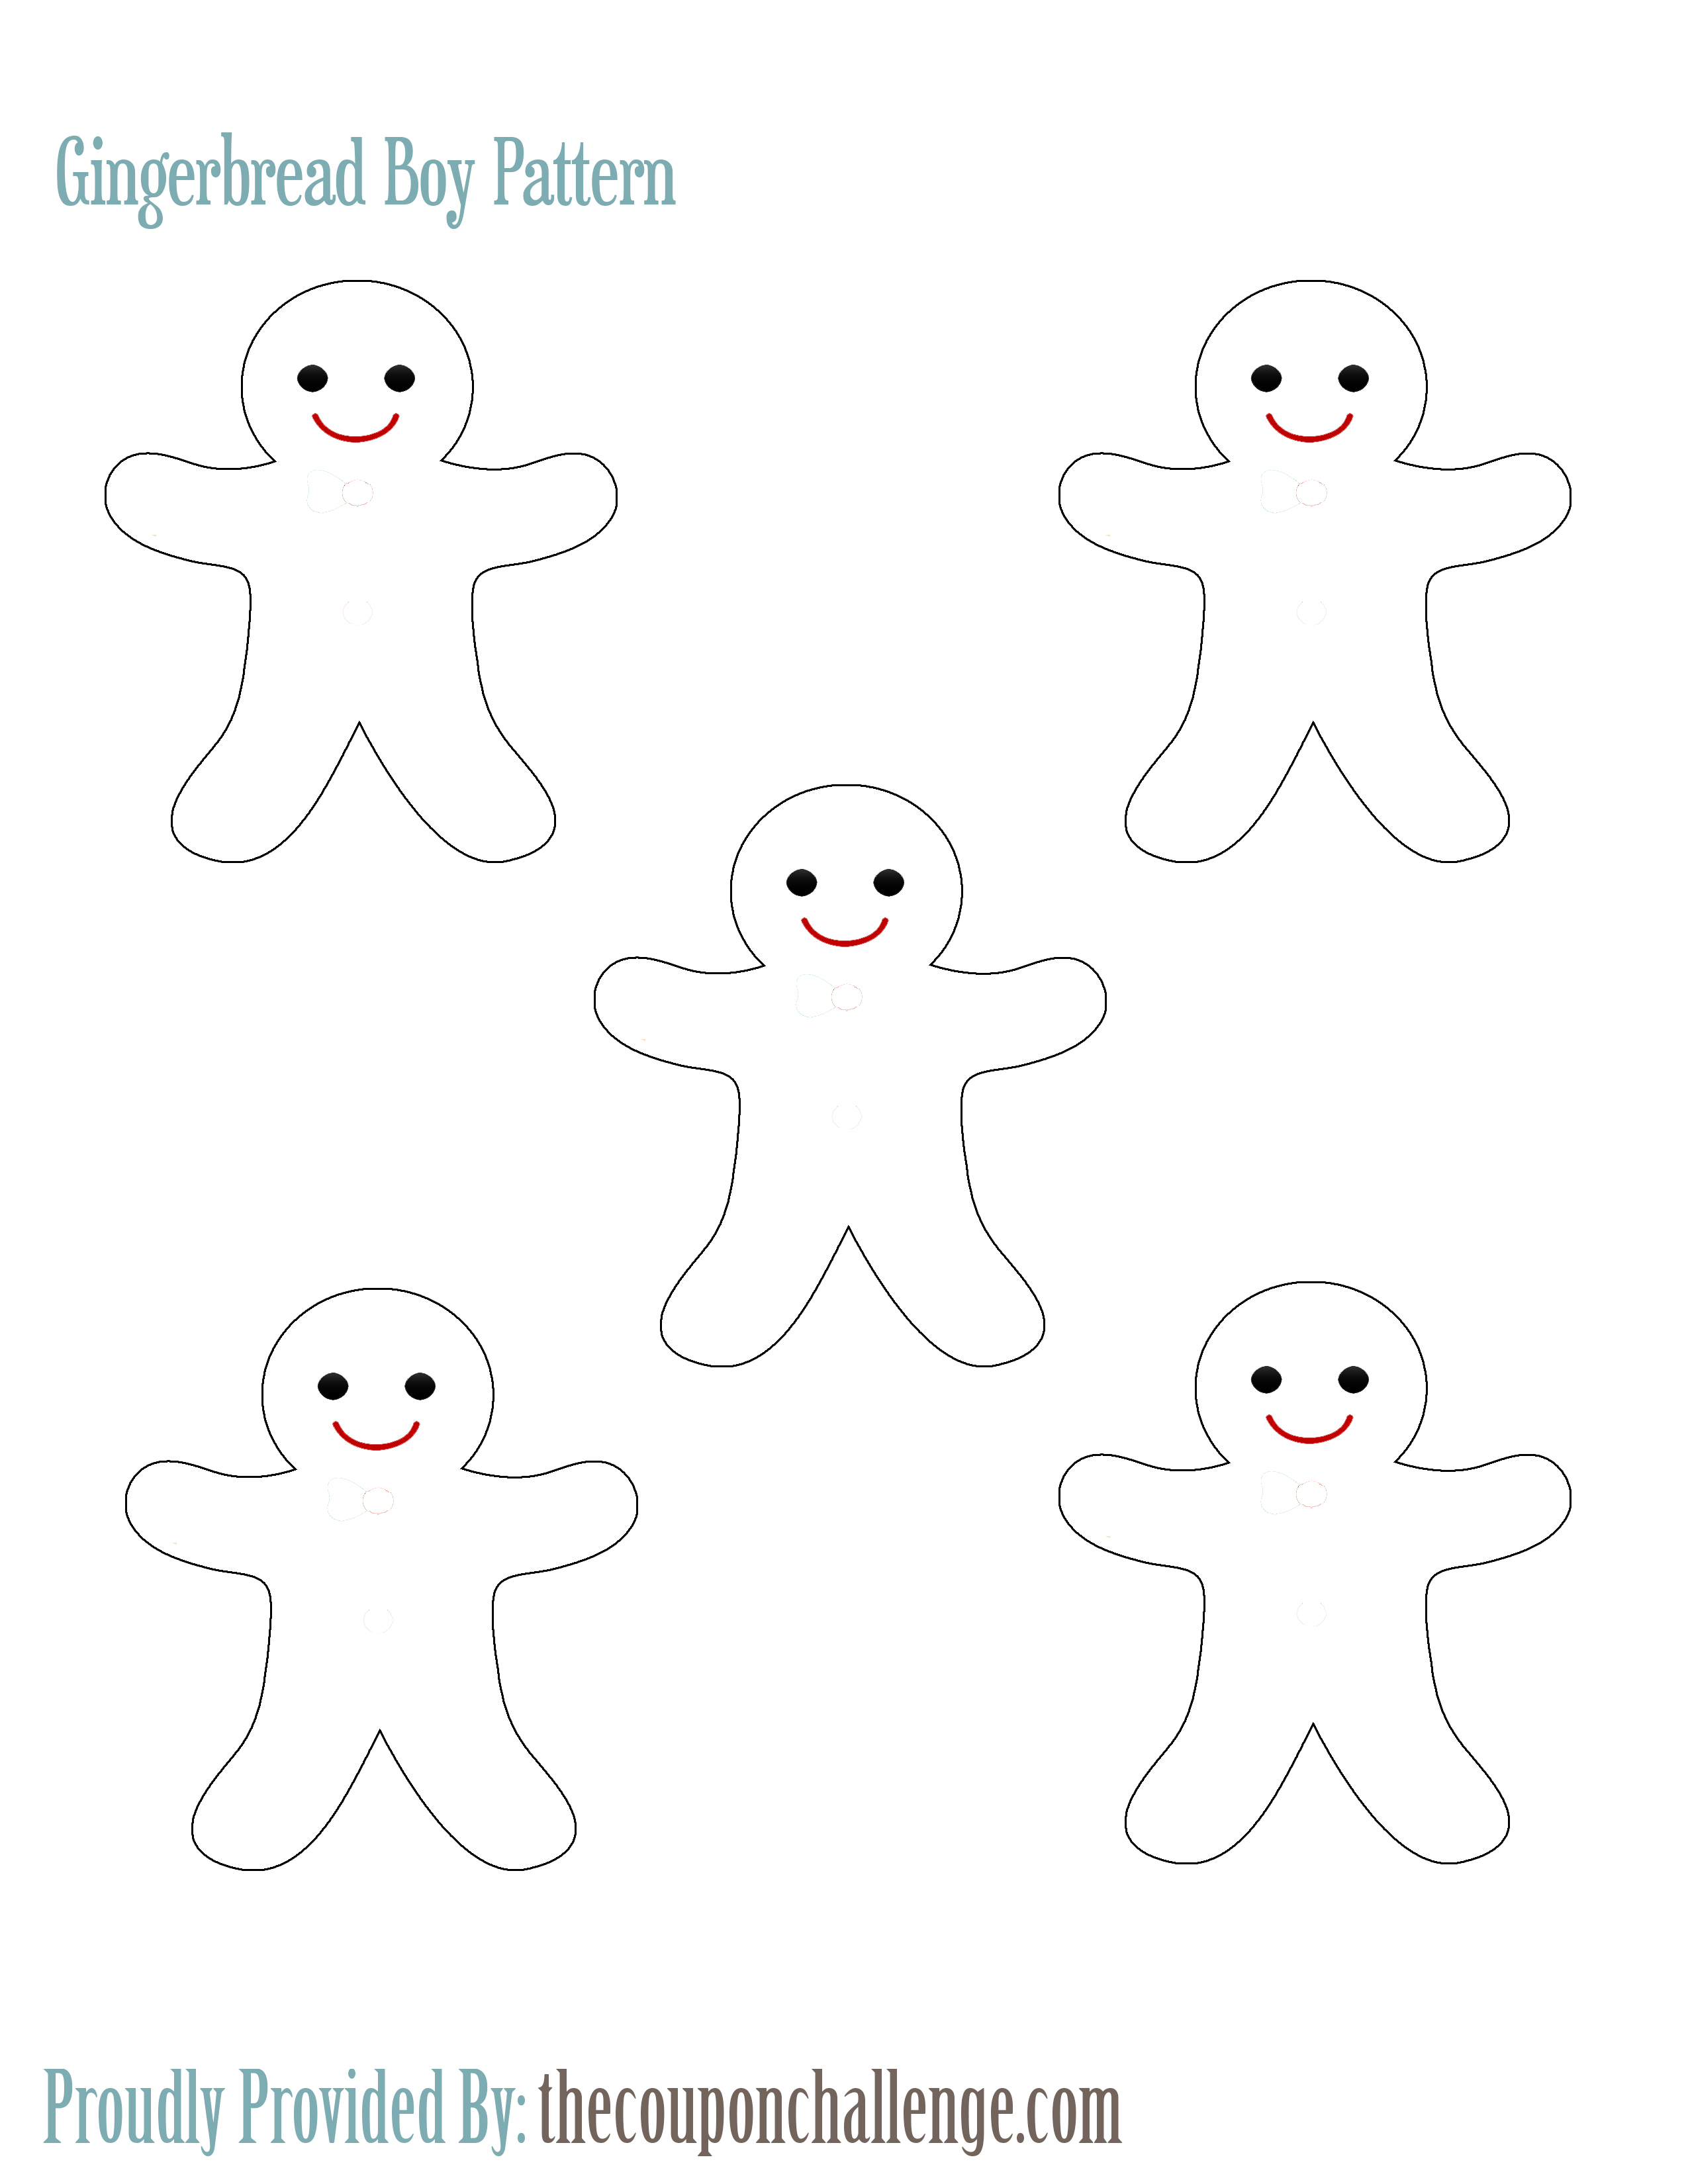 Gingerbread Boy Pattern